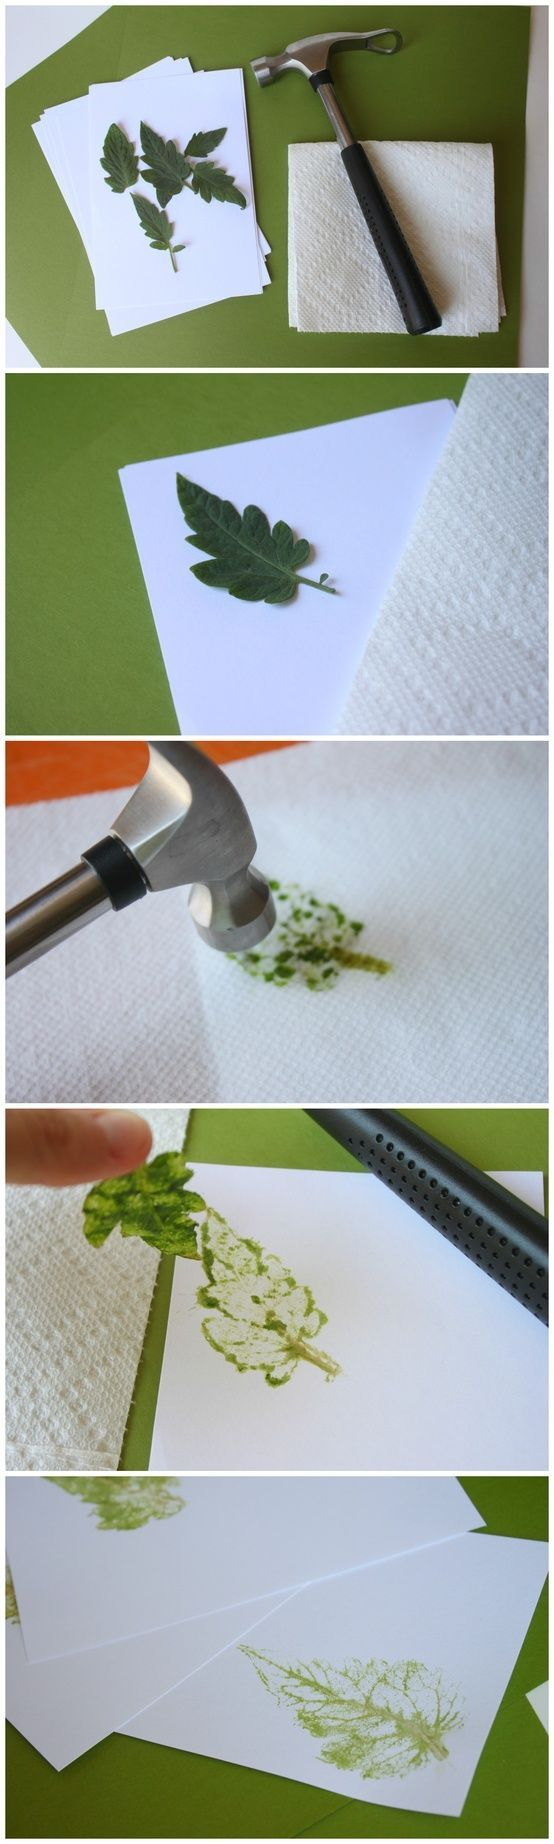 natural print--I want to try this!